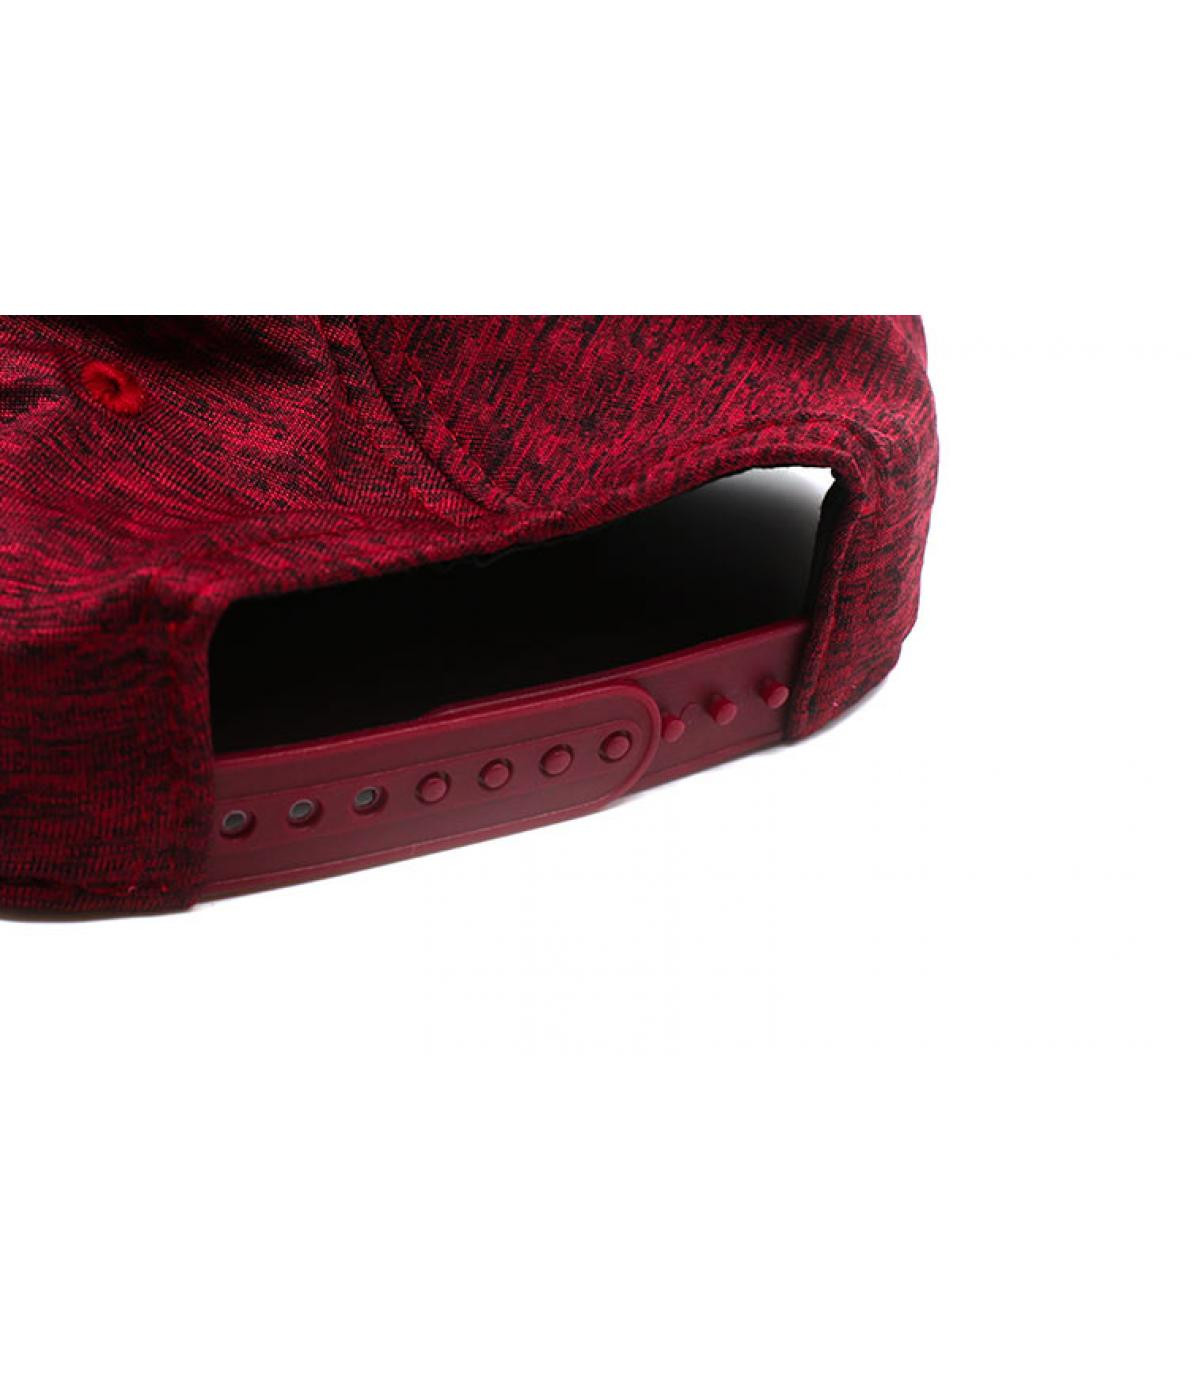 Details Dry Switch Boston 9Fifty cardinal - afbeeling 5